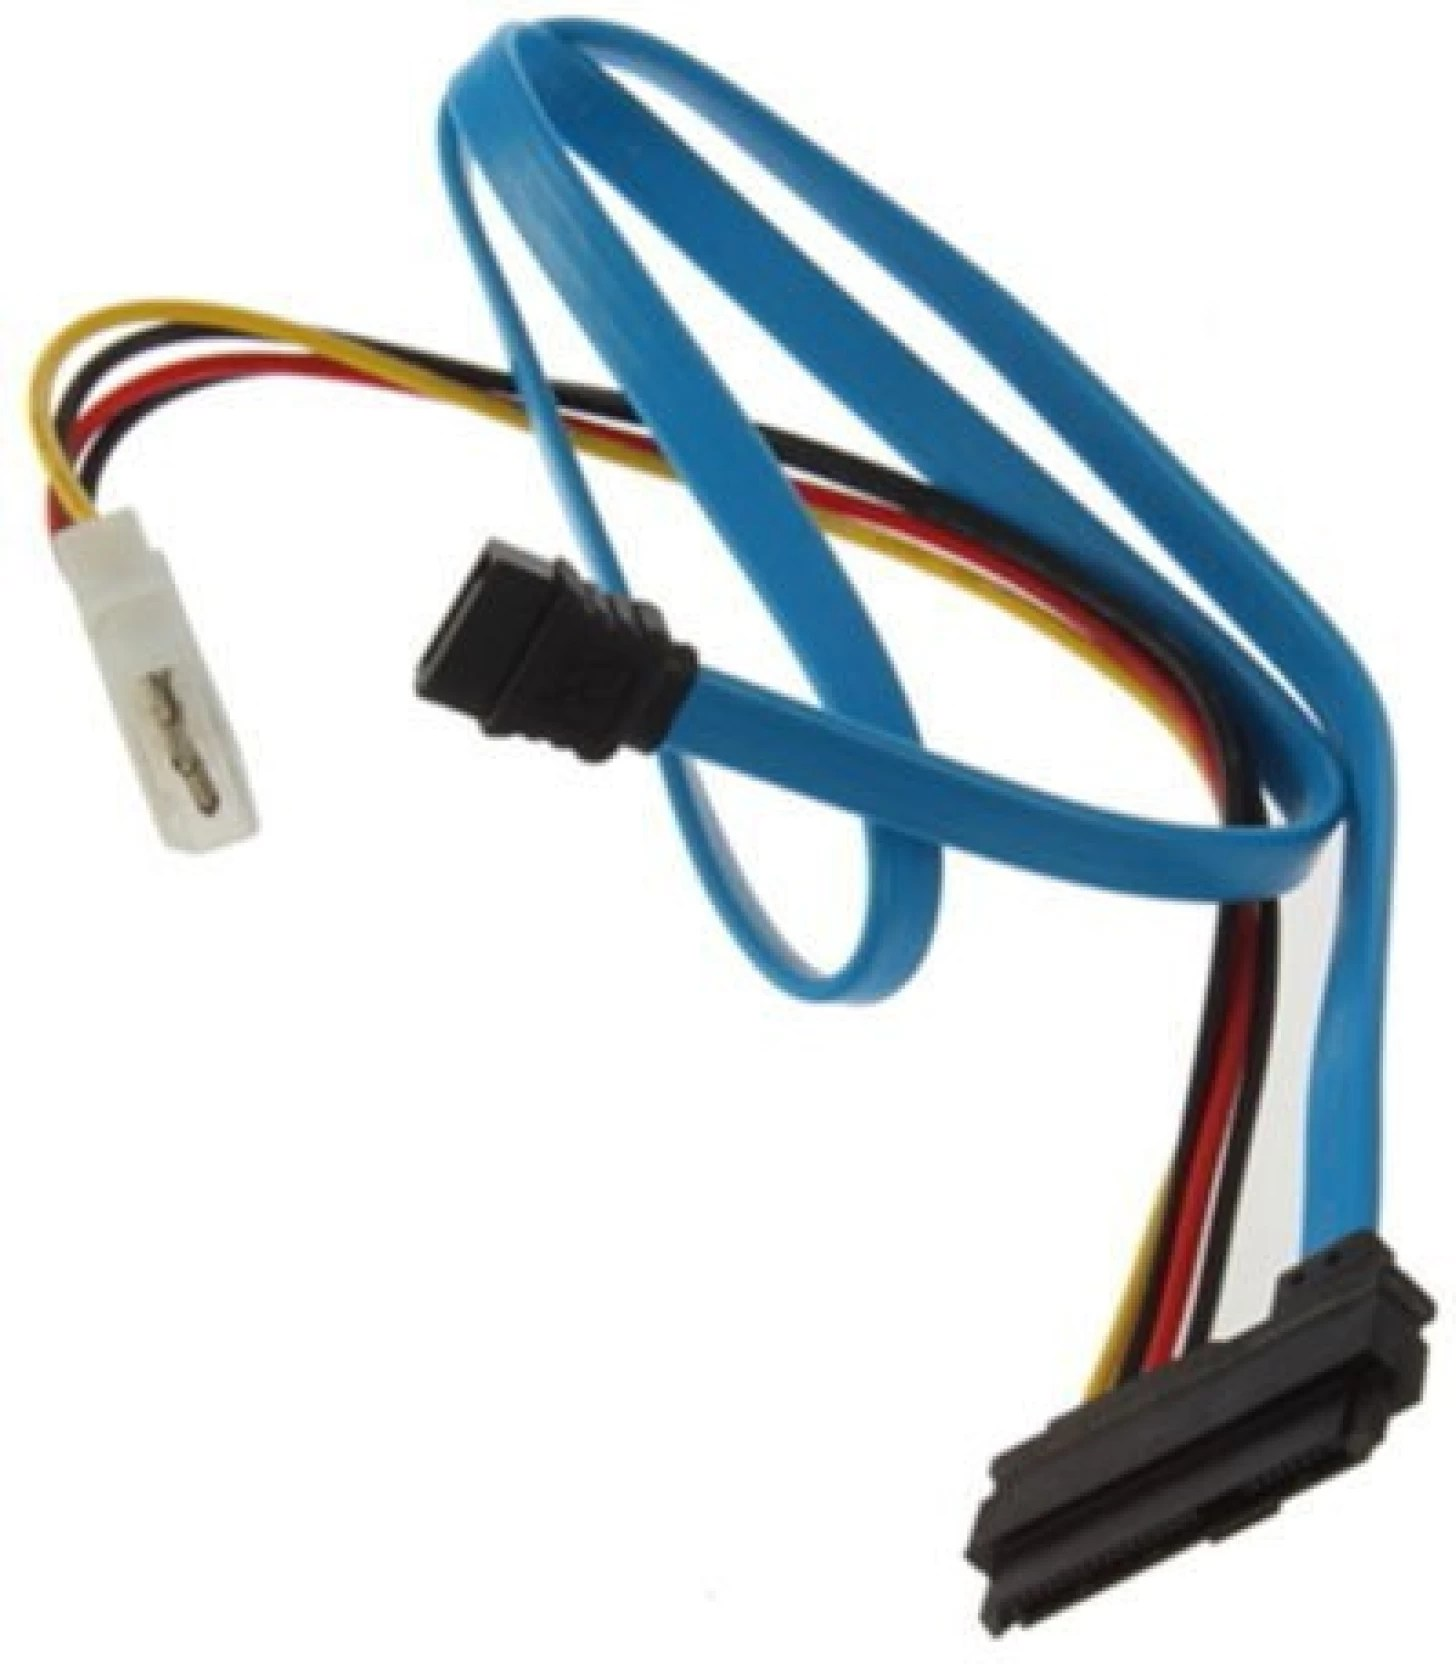 medium resolution of buyyart tv out cable new 1pcs high quality 7 pin sata serial ata to sas 29 pin 4 pin cable male connector adapter blue black for computer